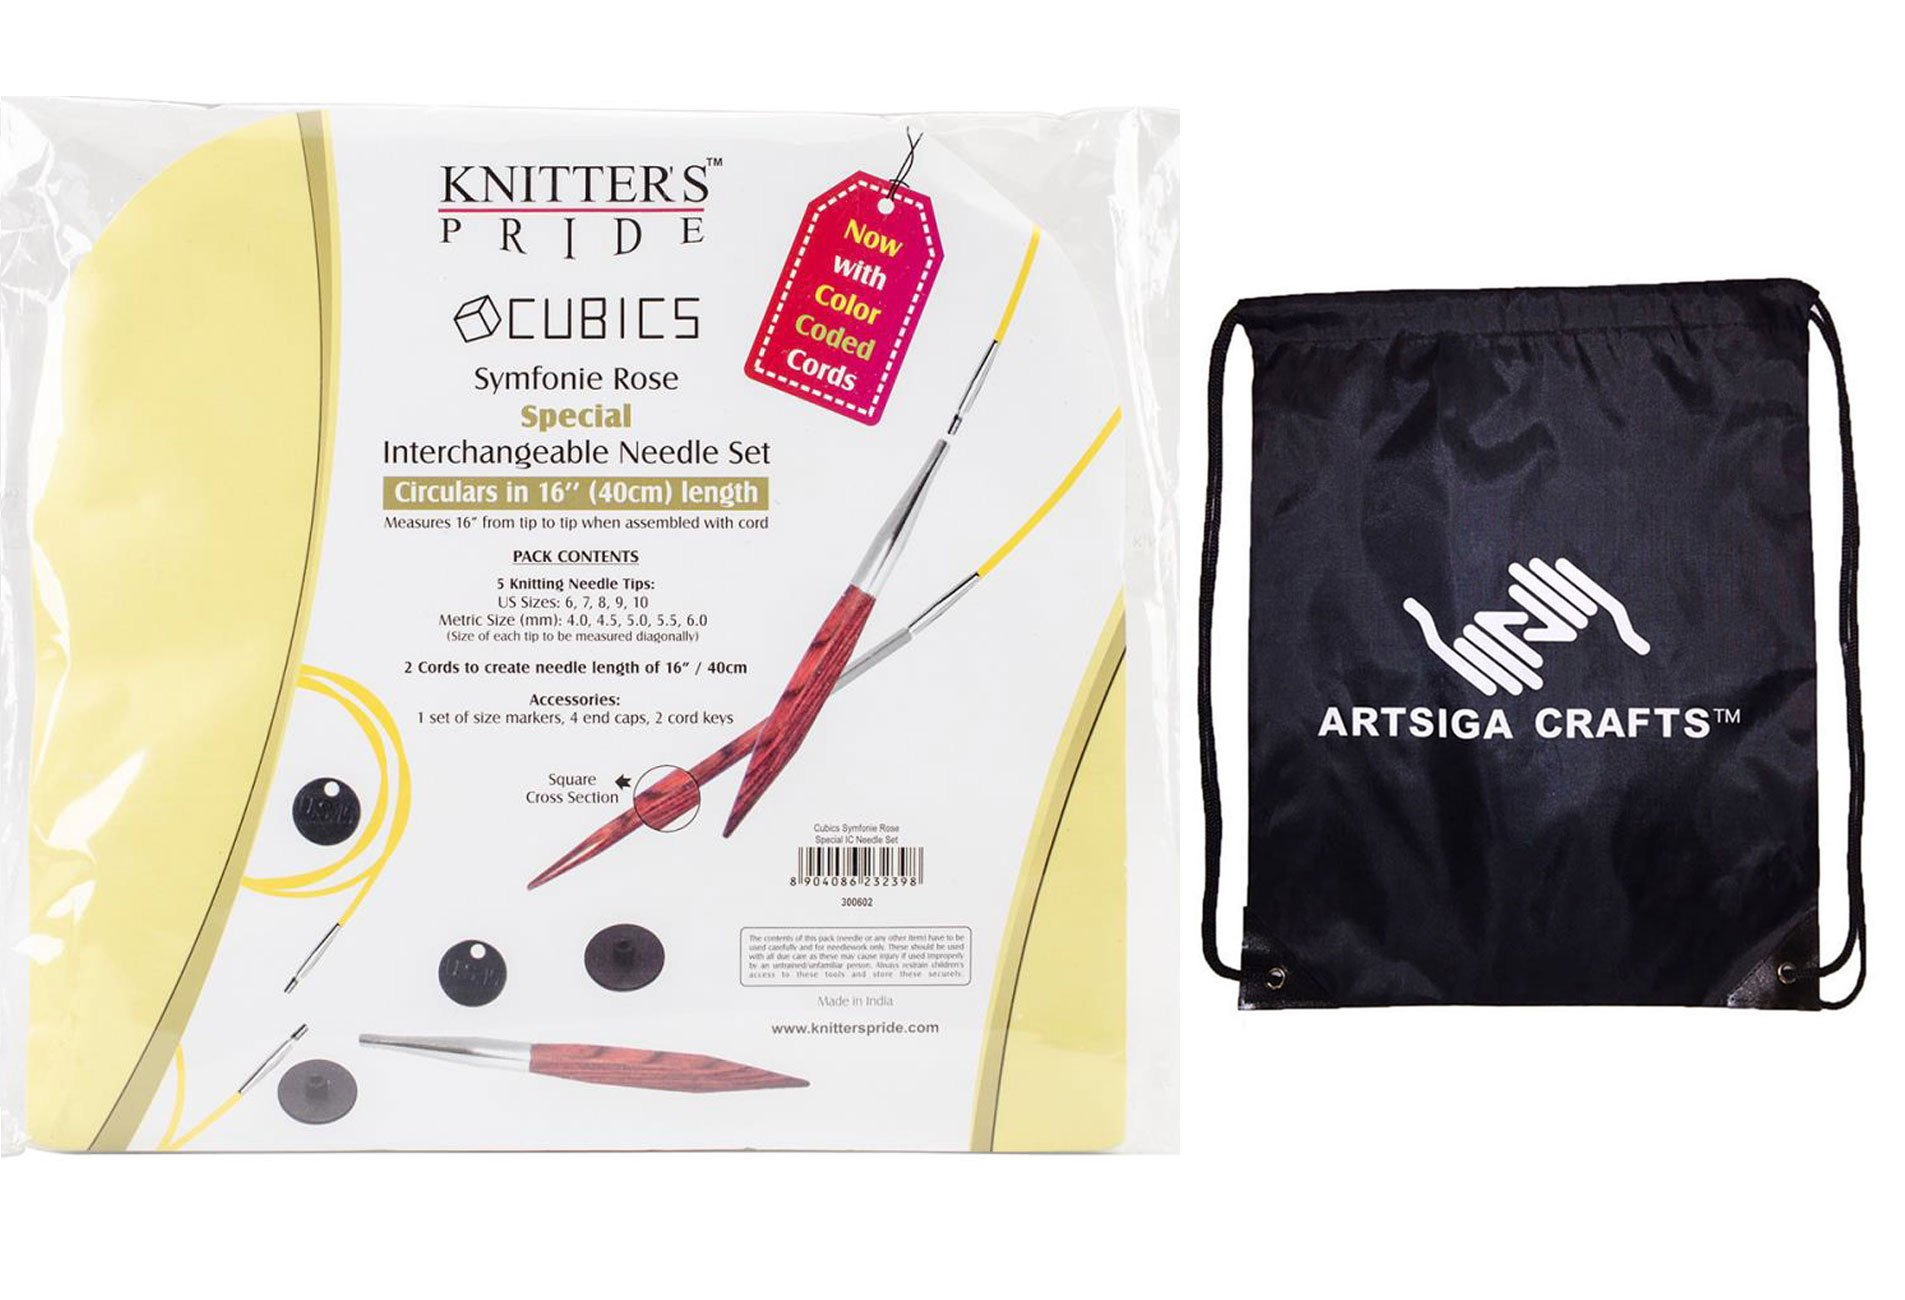 Knitter's Pride Knitting Needles Cubics Special 16 inch Interchangeable Short Tip Set Bundle with 1 Artsiga Crafts Project Bag 300602